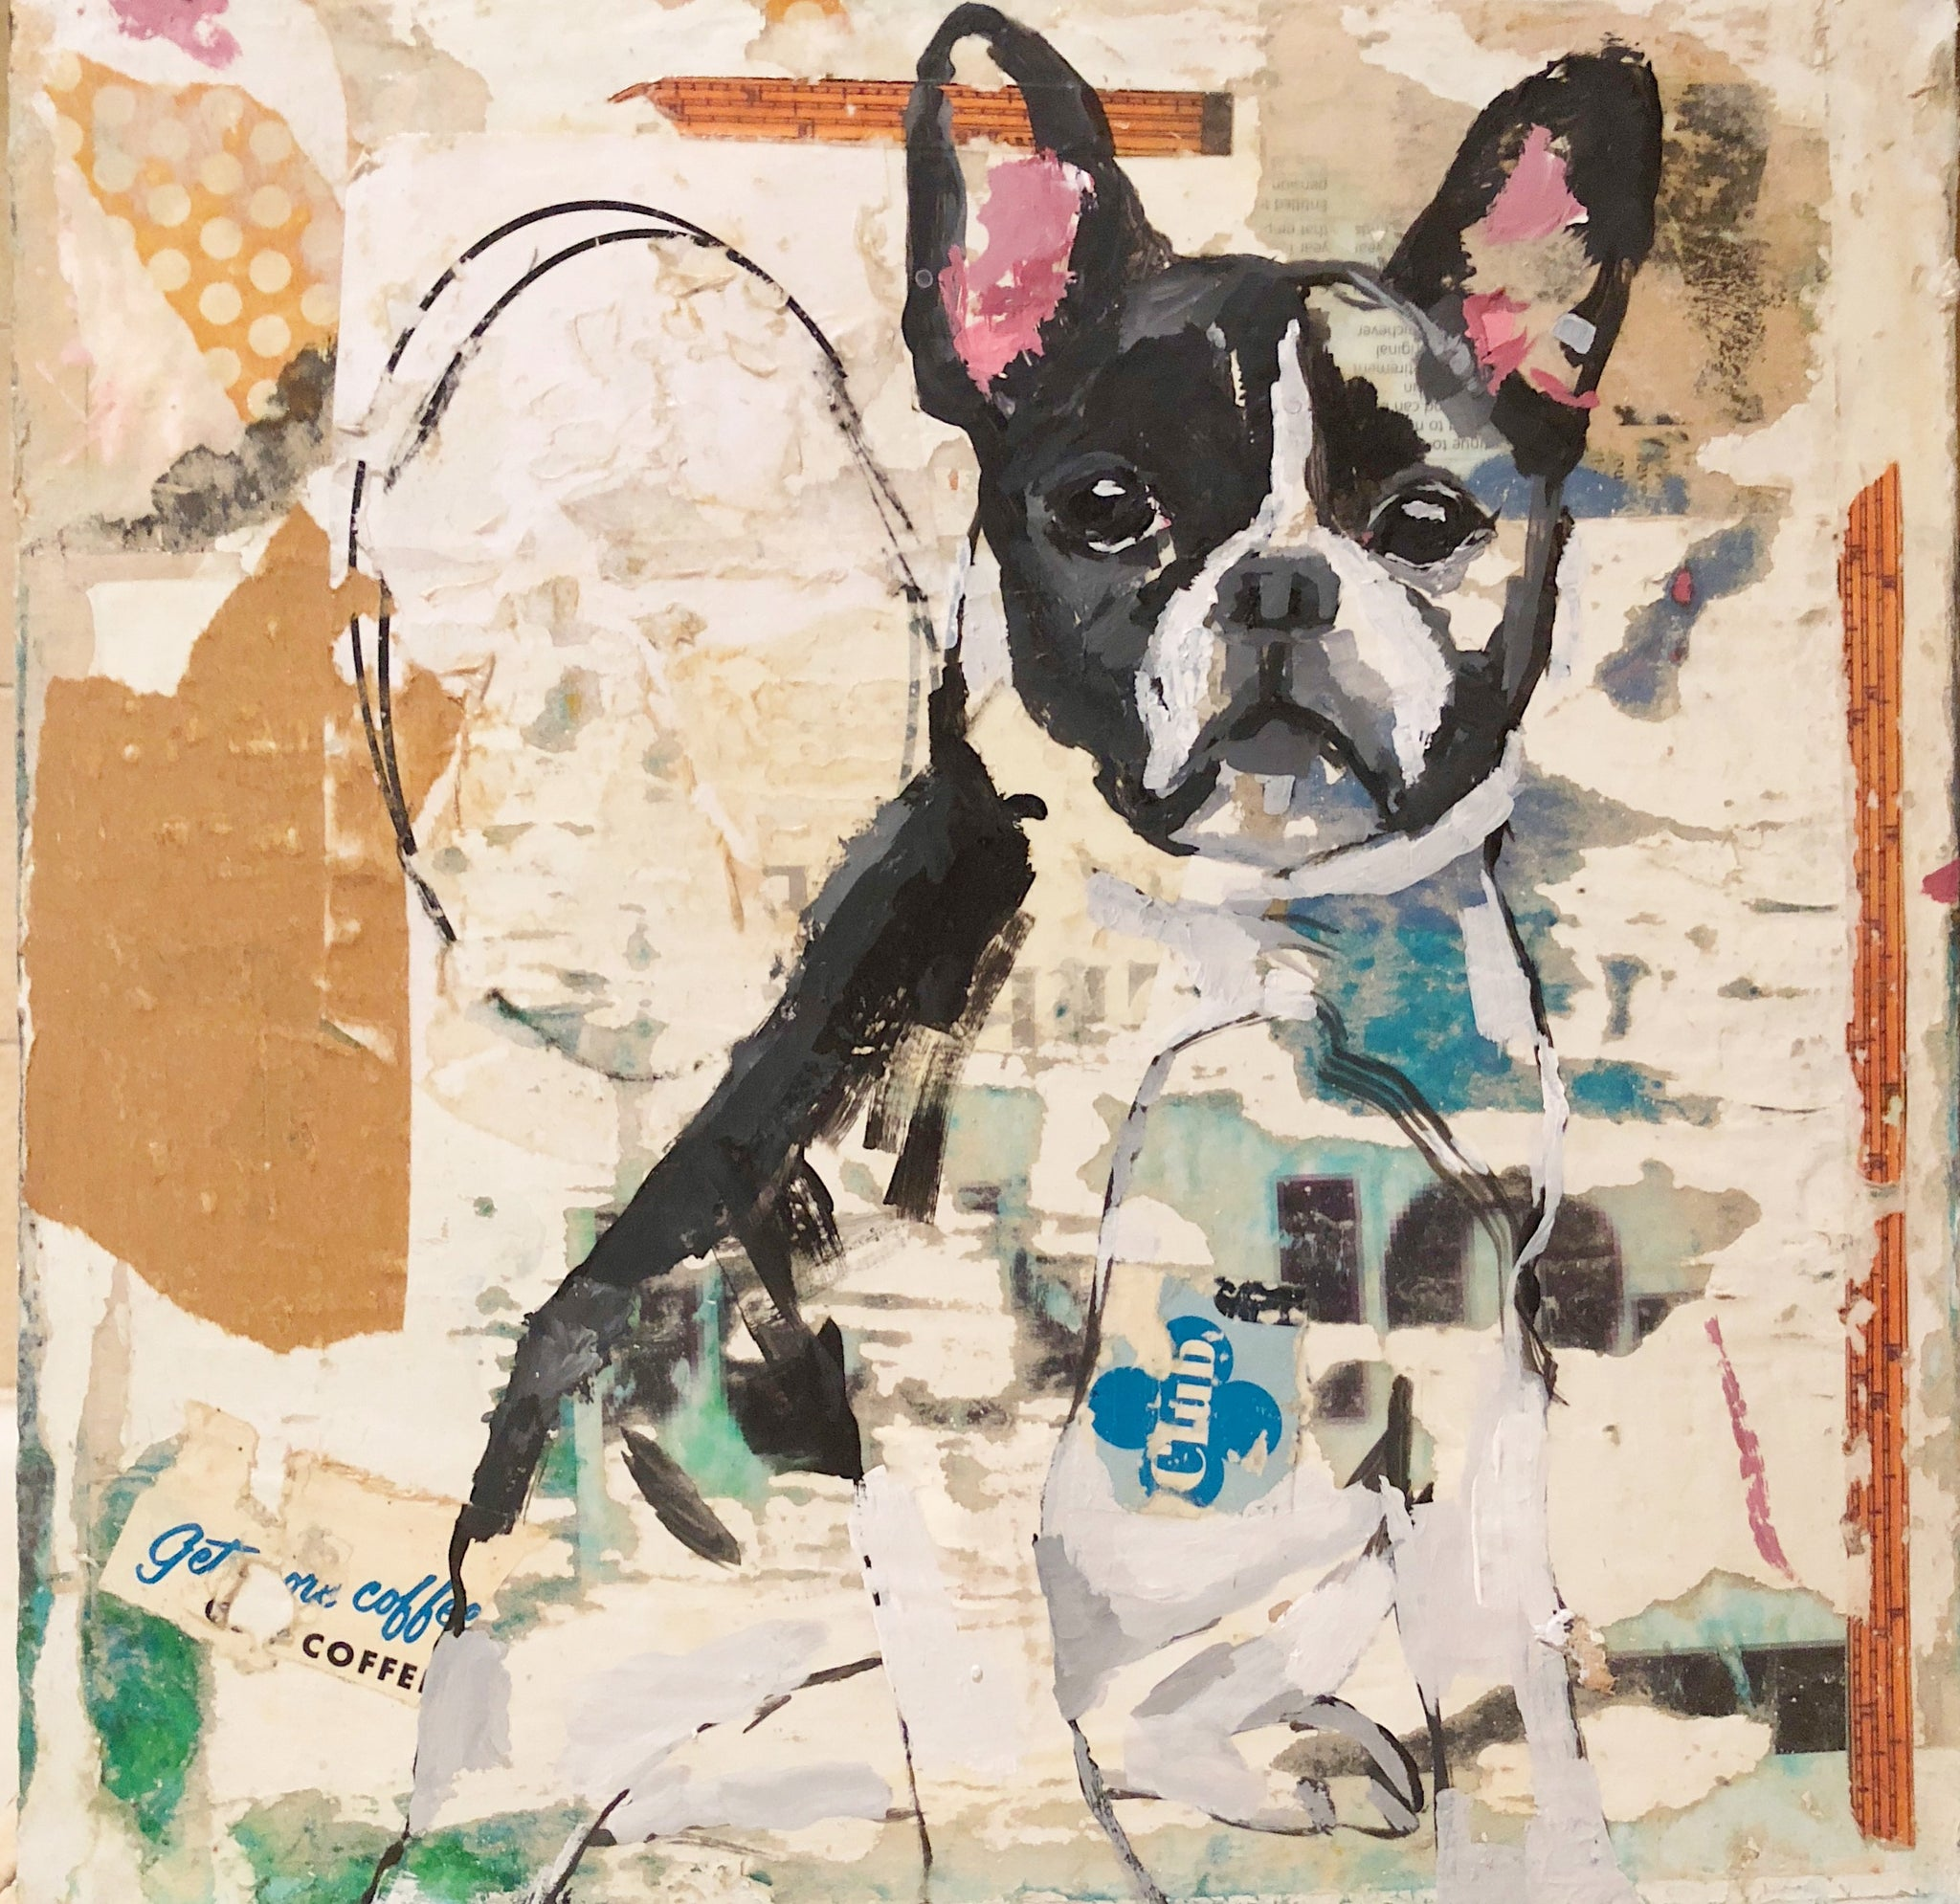 12x12 mixed media abstract dog painting in acrylic paint and collage.